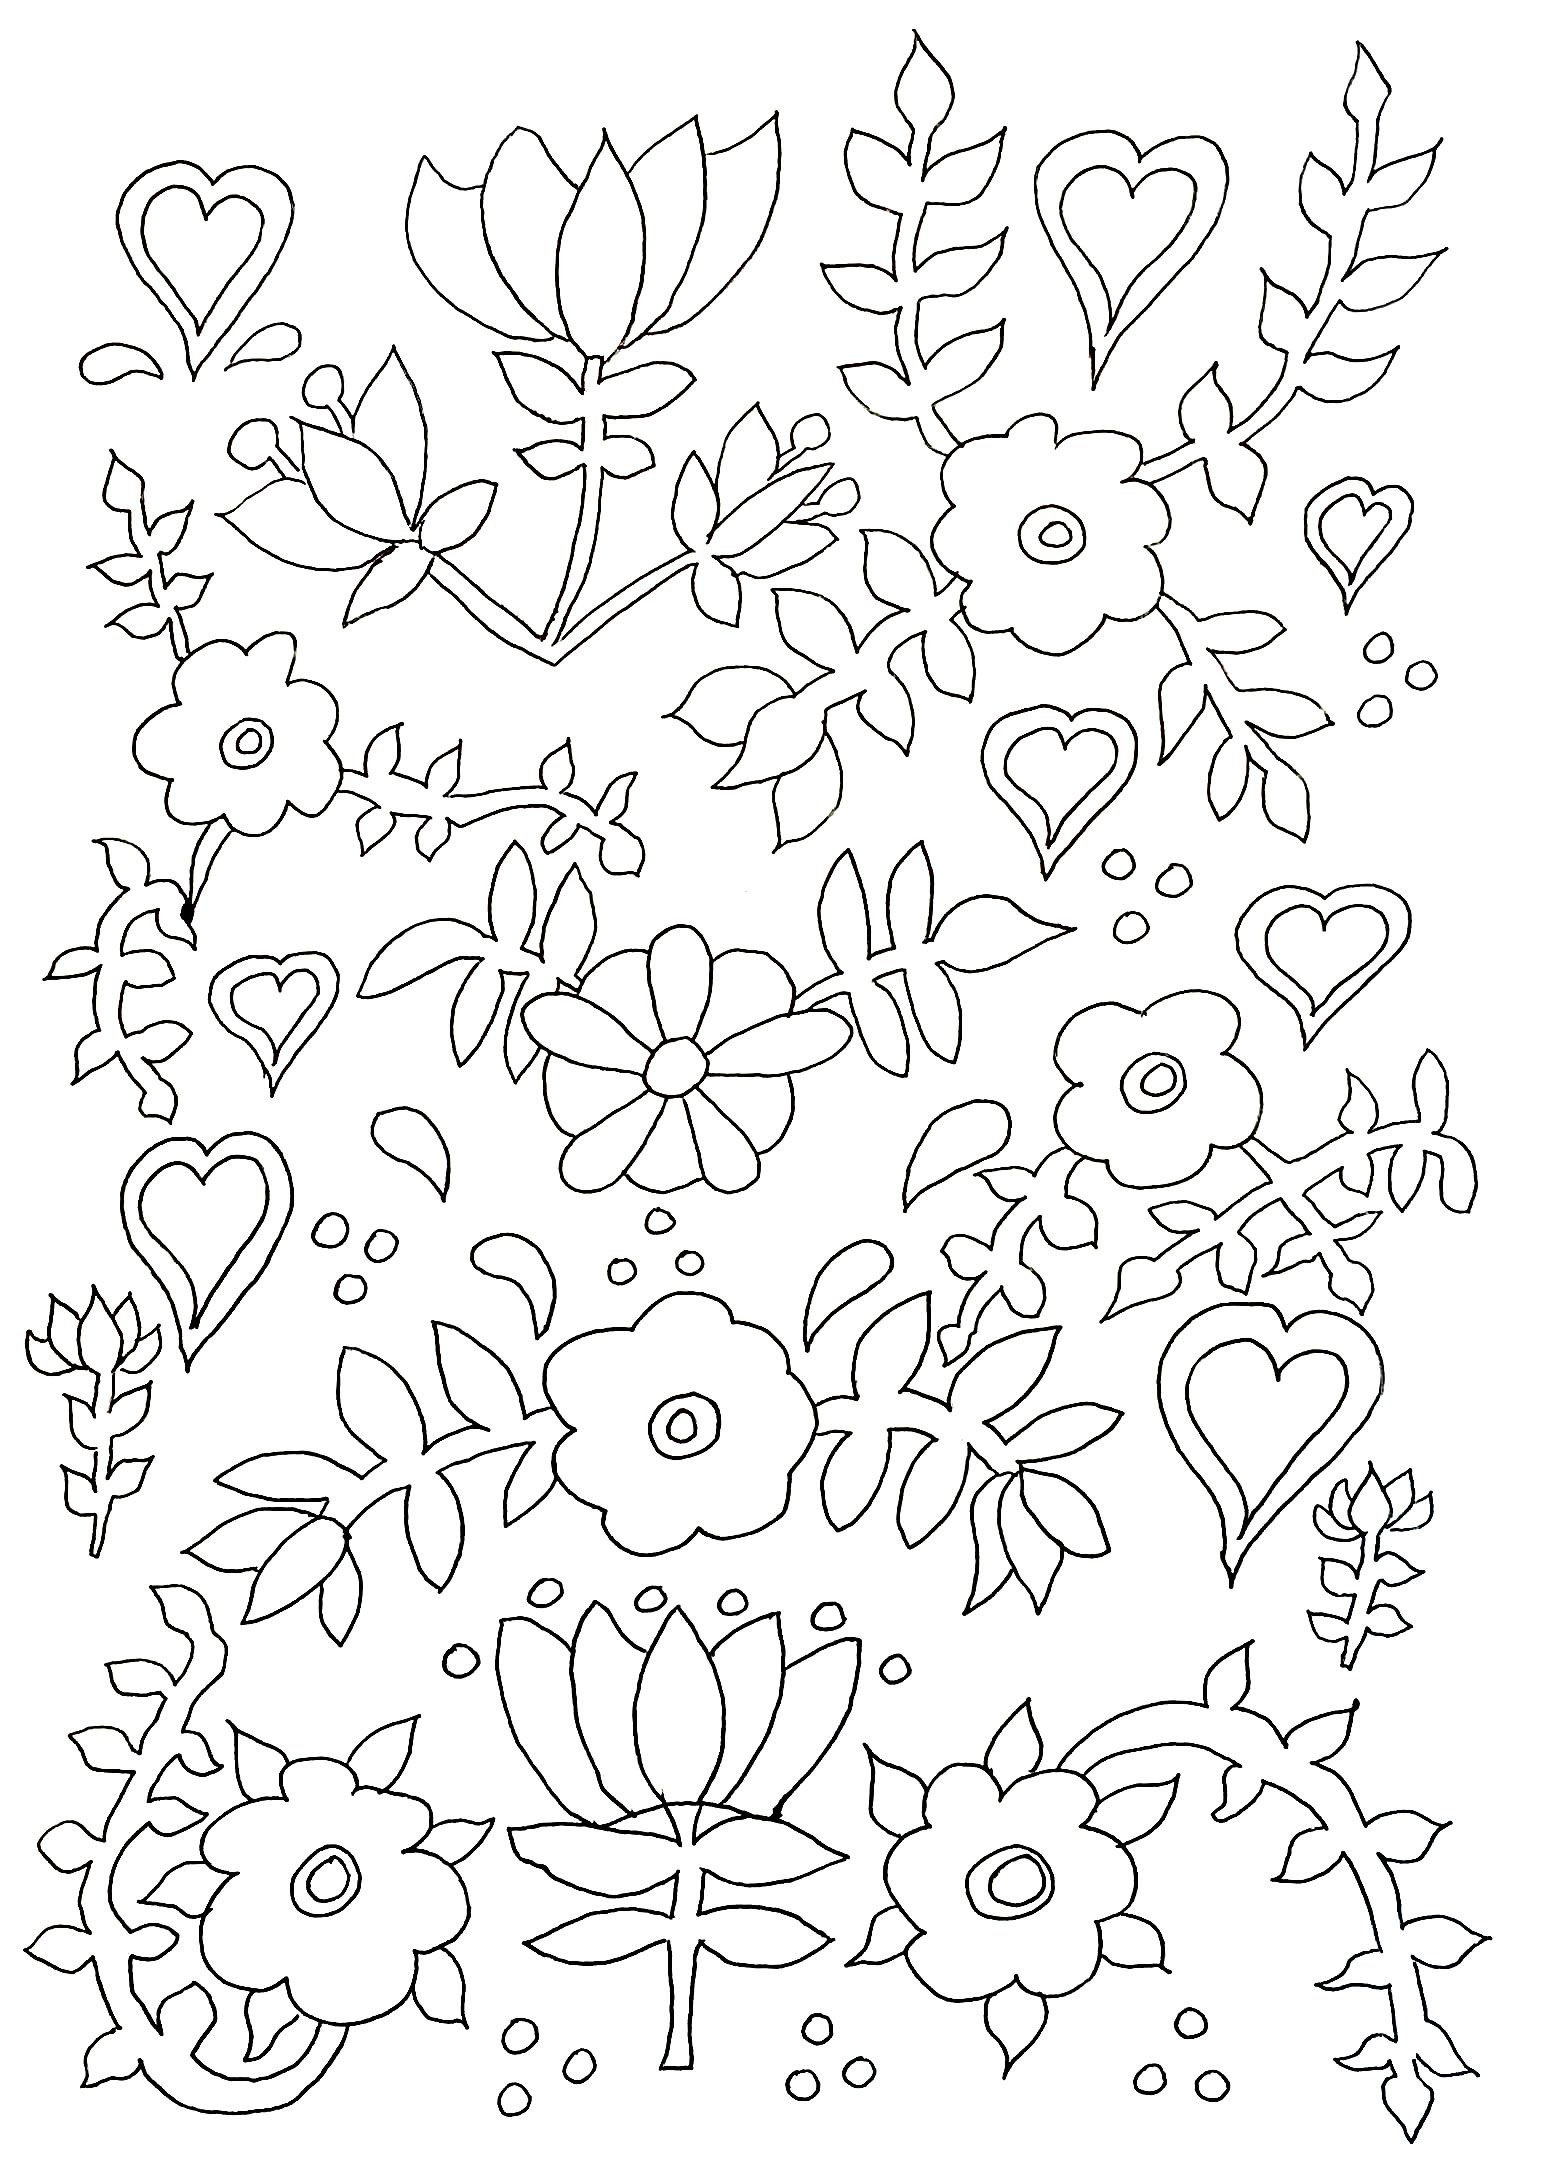 coloring-adult-flowers, From the gallery : Flowers And Vegetation ...